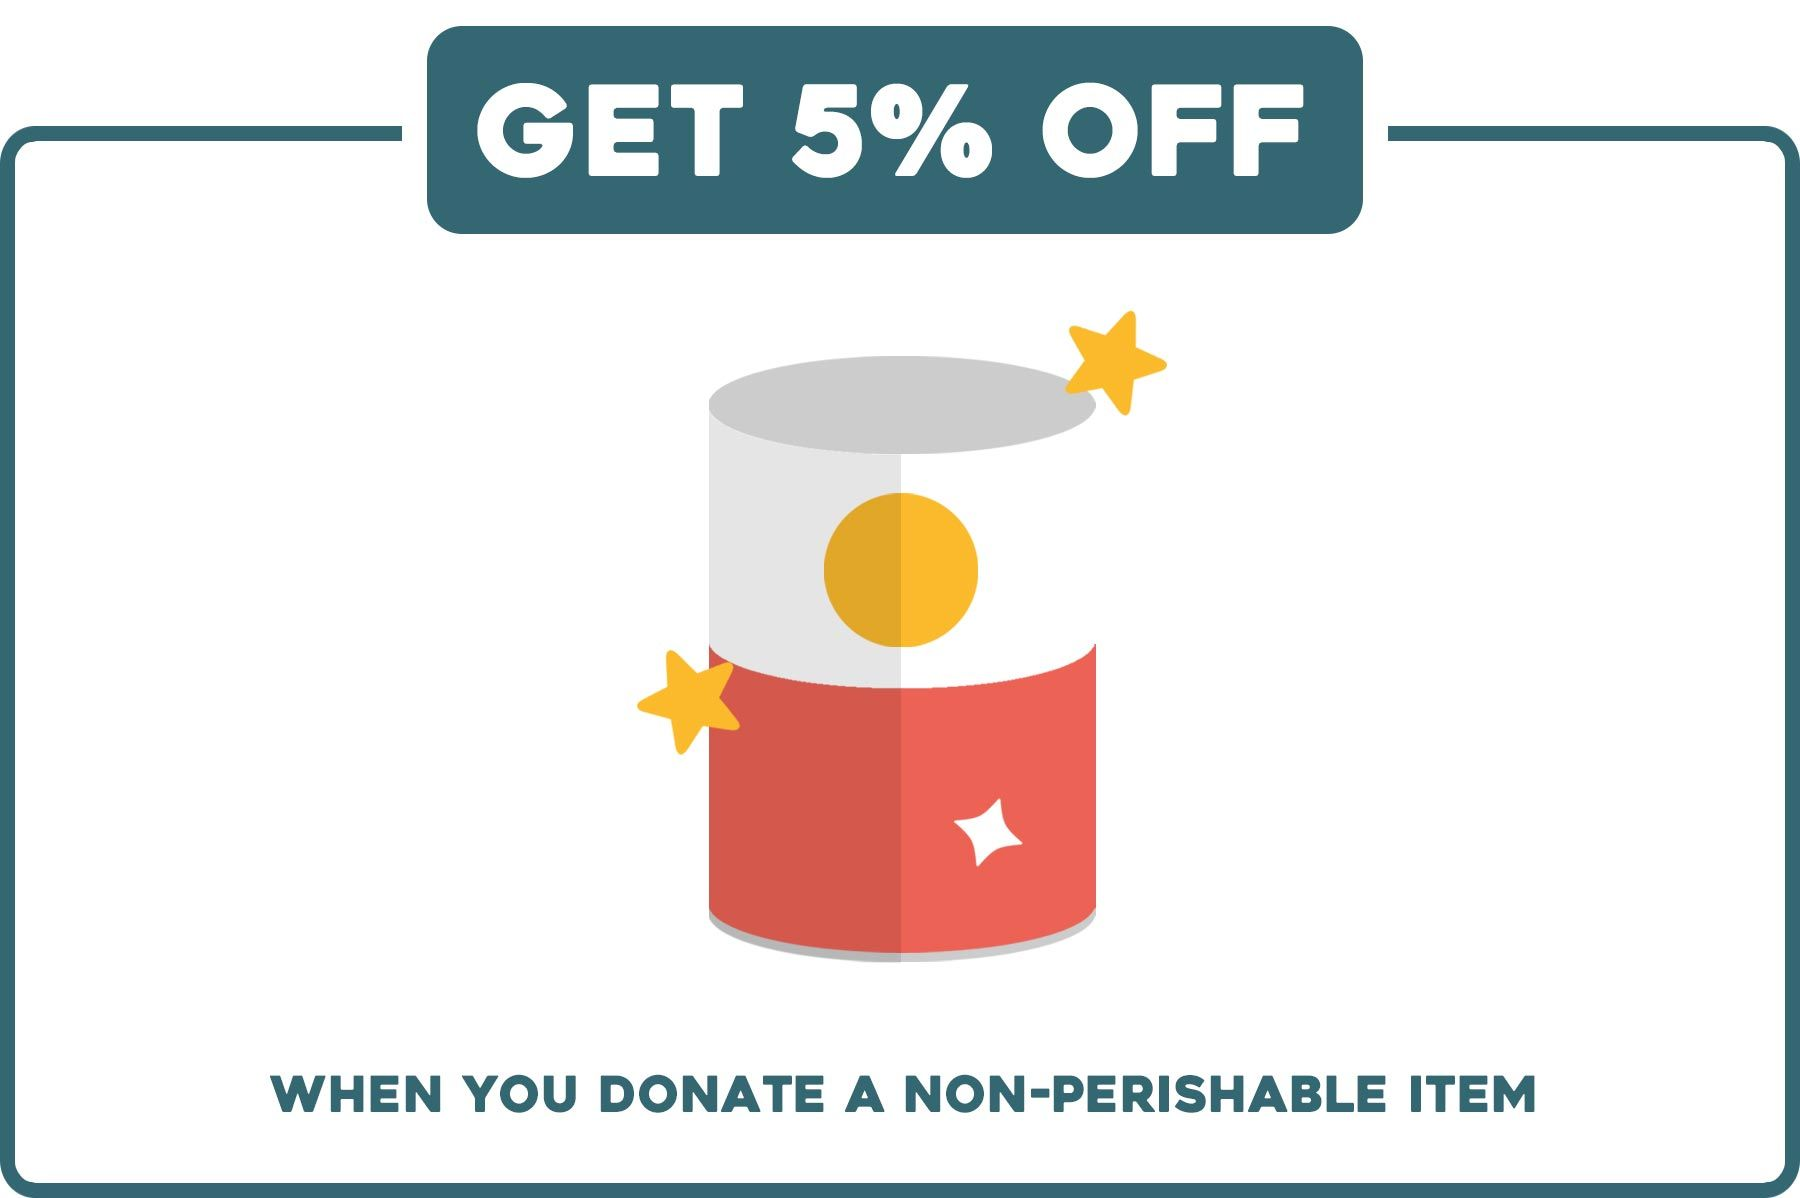 Donate a non-perishable item and get 5% off a purchase in our stores!